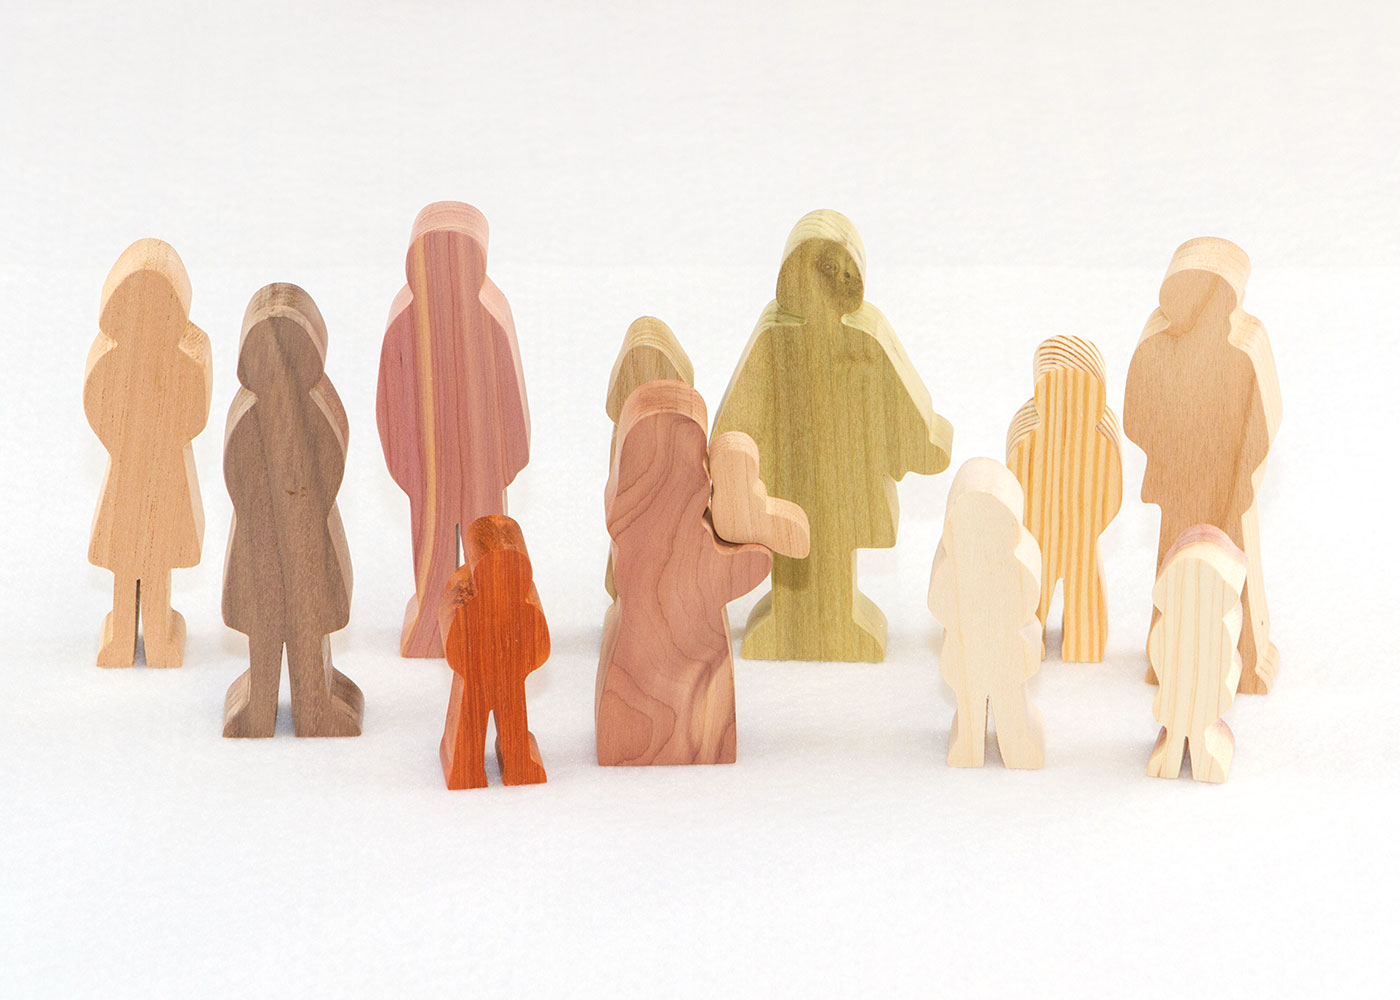 12 Multi-Wood Figures for Sunday School Lesson